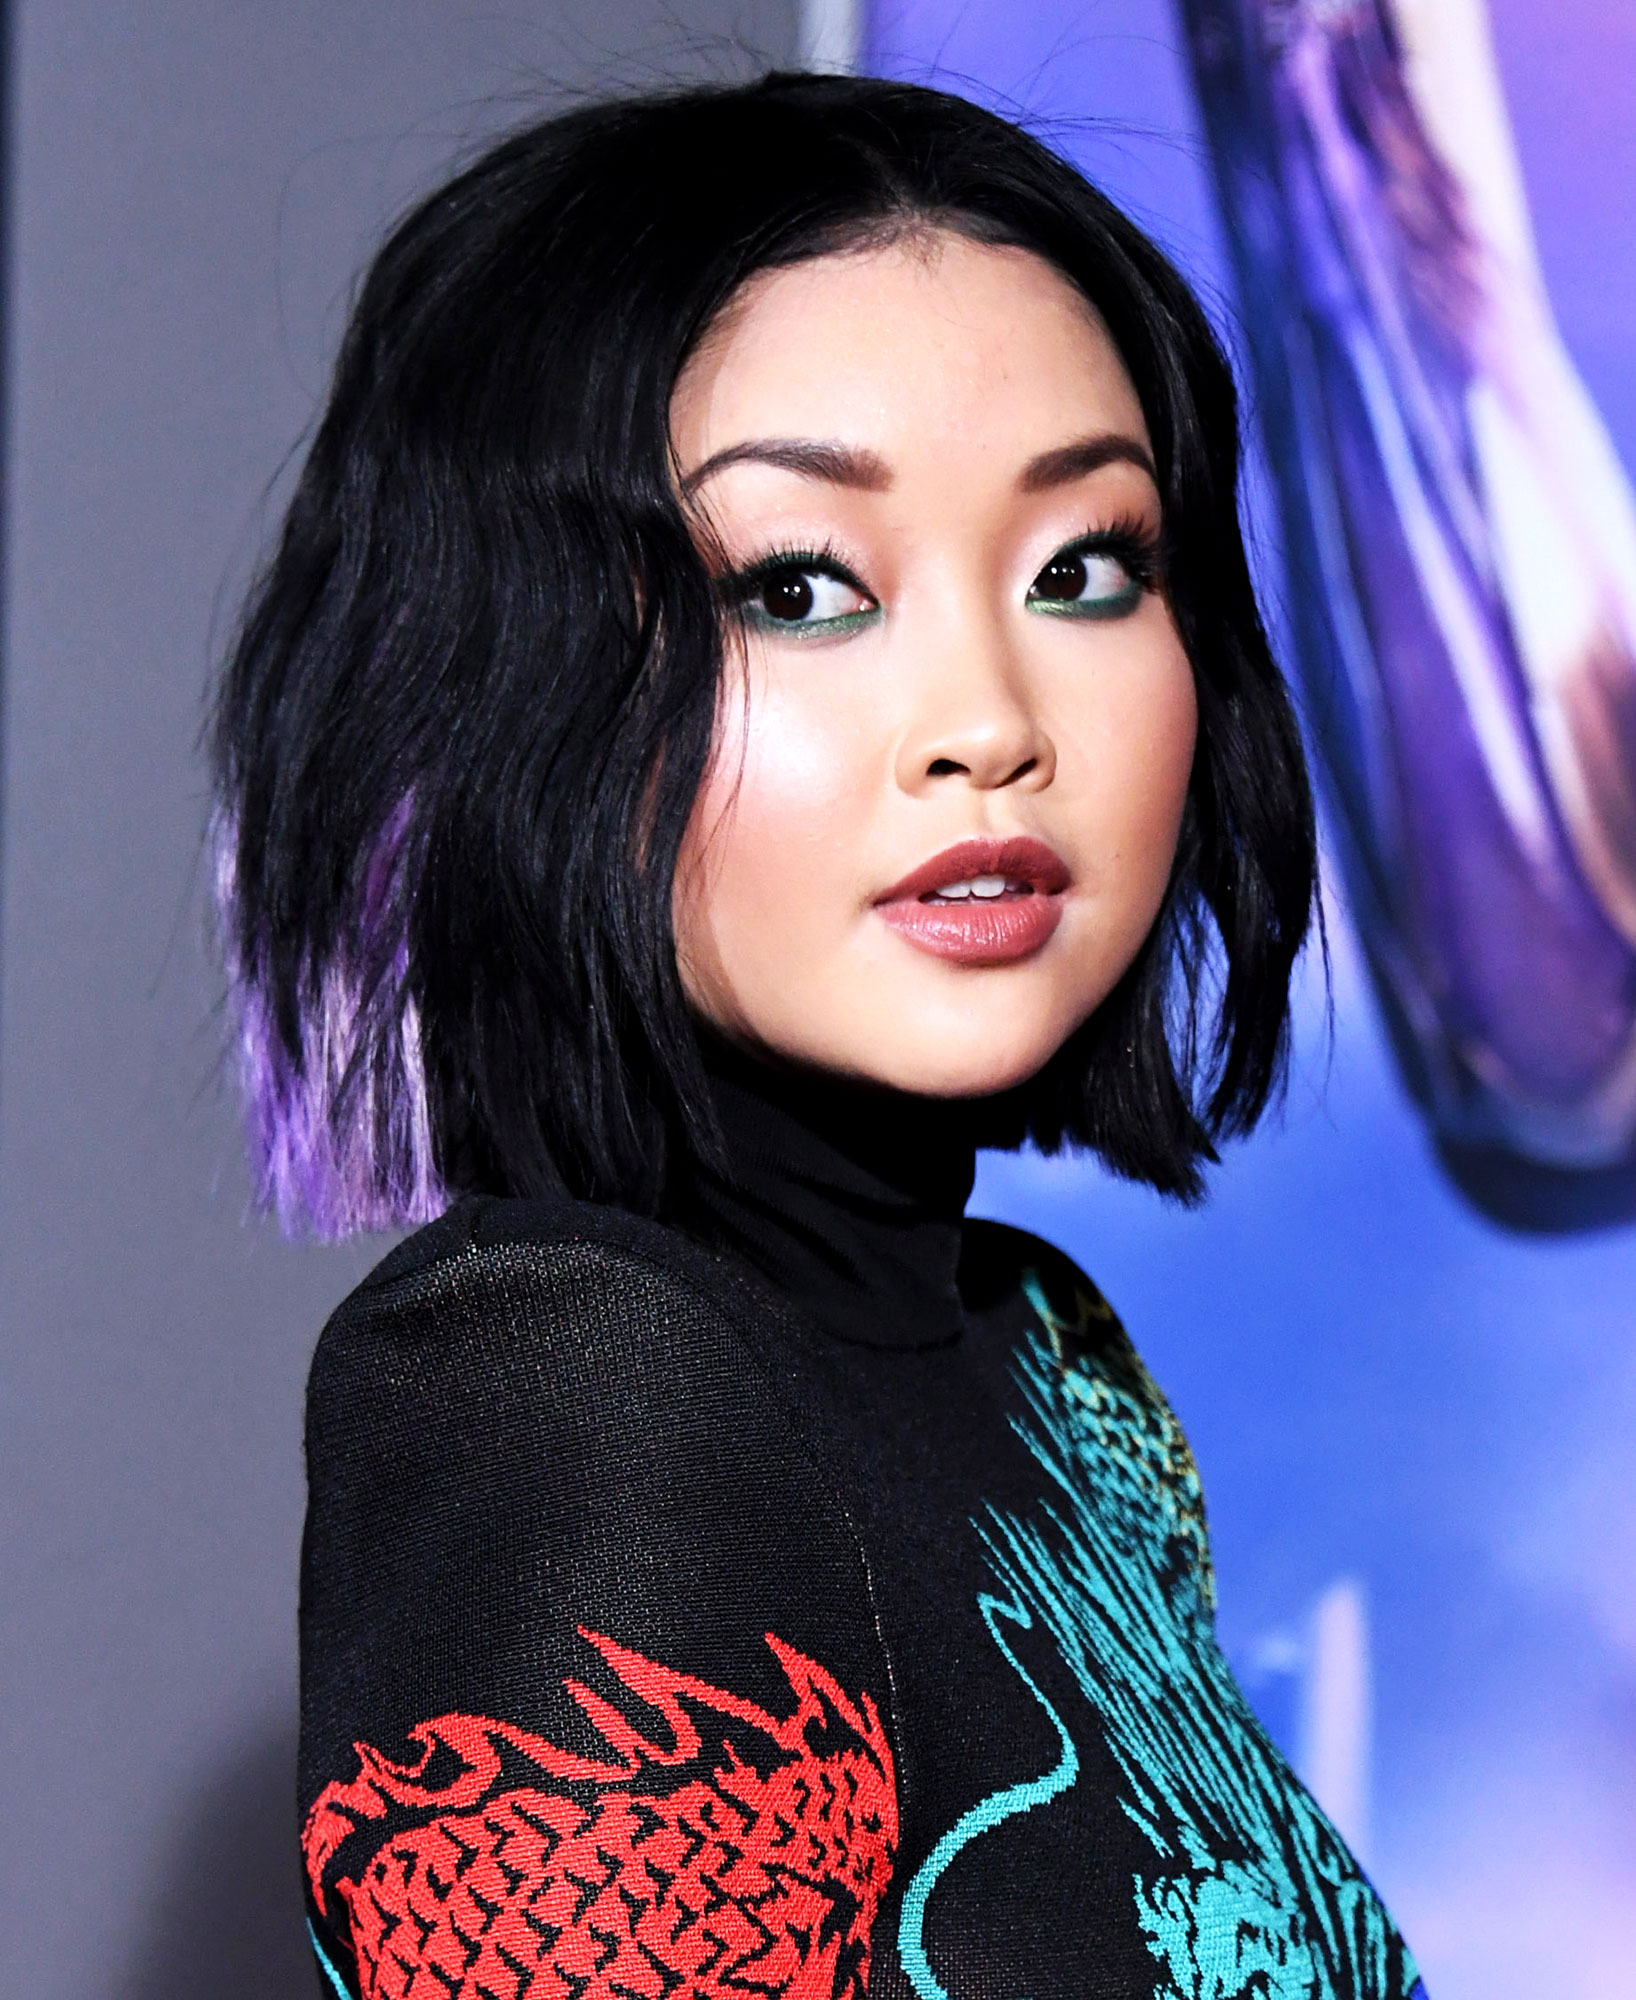 """Lana Condor - Lana Condor attends the premiere of 20th Century Fox's """"Alita: Battle Angel"""" at Westwood Regency Theater on February 05, 2019 in Los Angeles, California."""